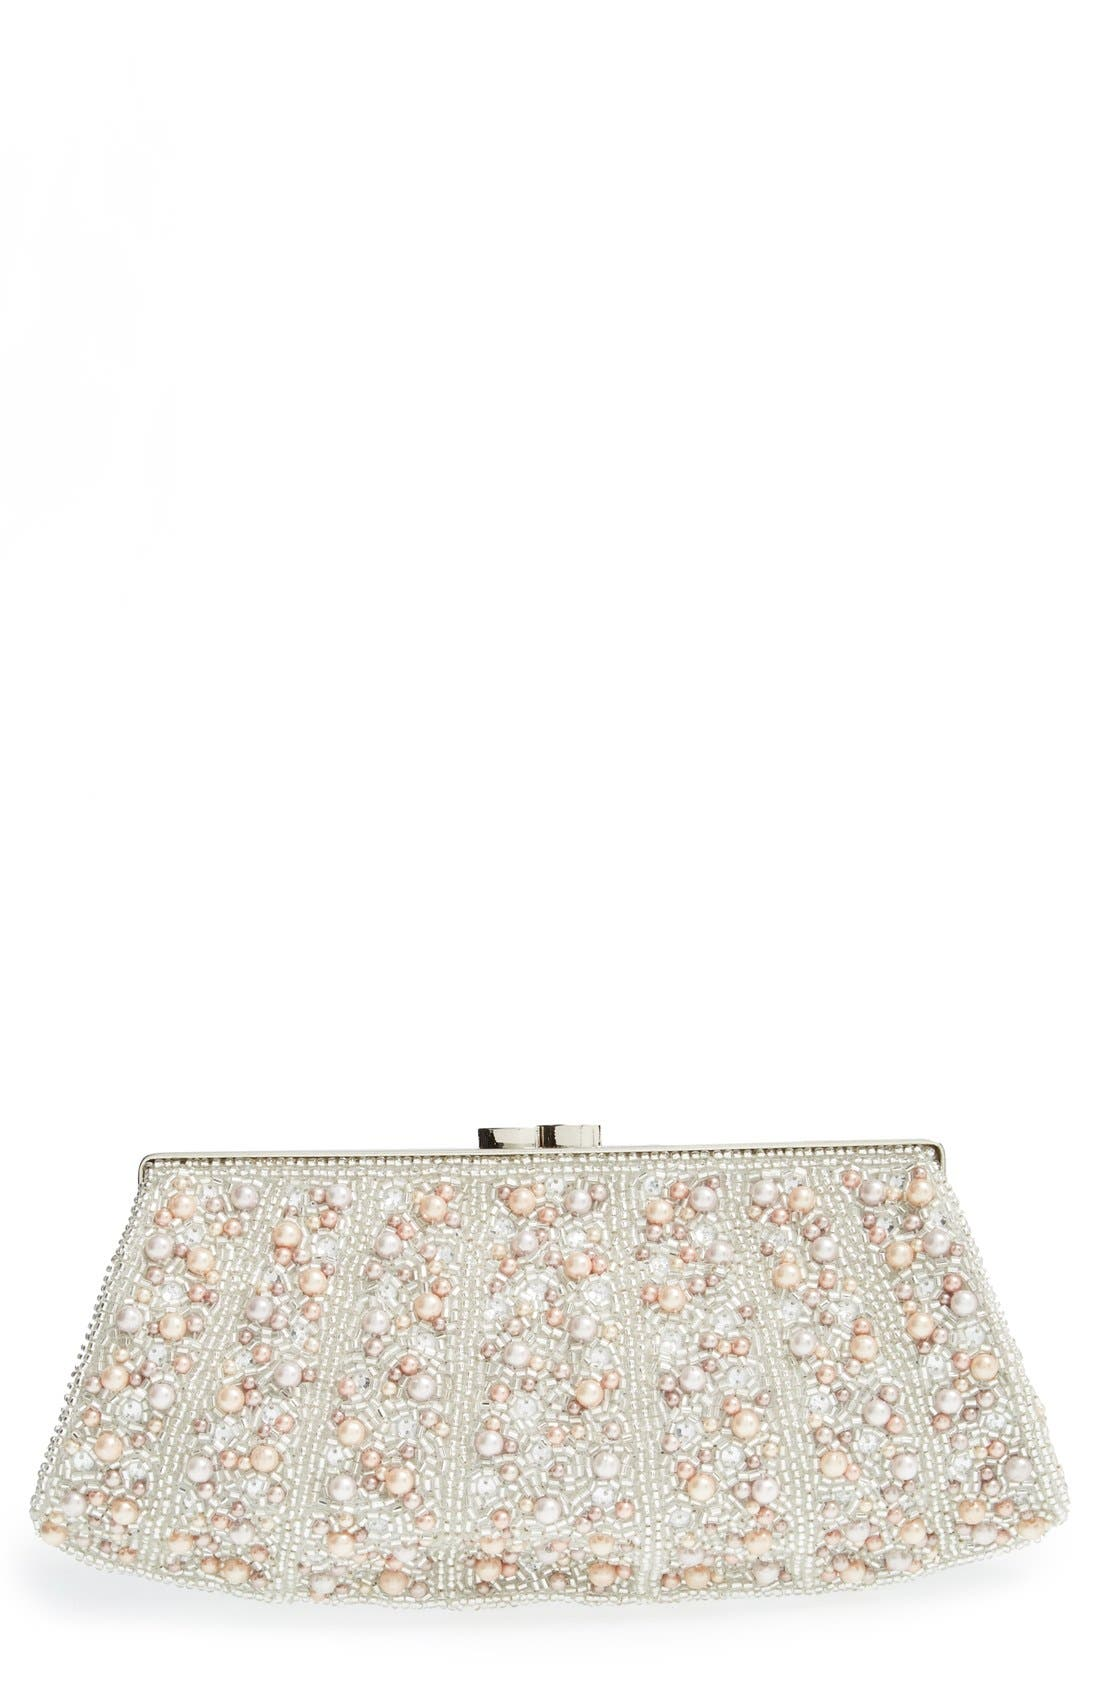 Alternate Image 1 Selected - Glint 'Pearl Encrusted' Clutch